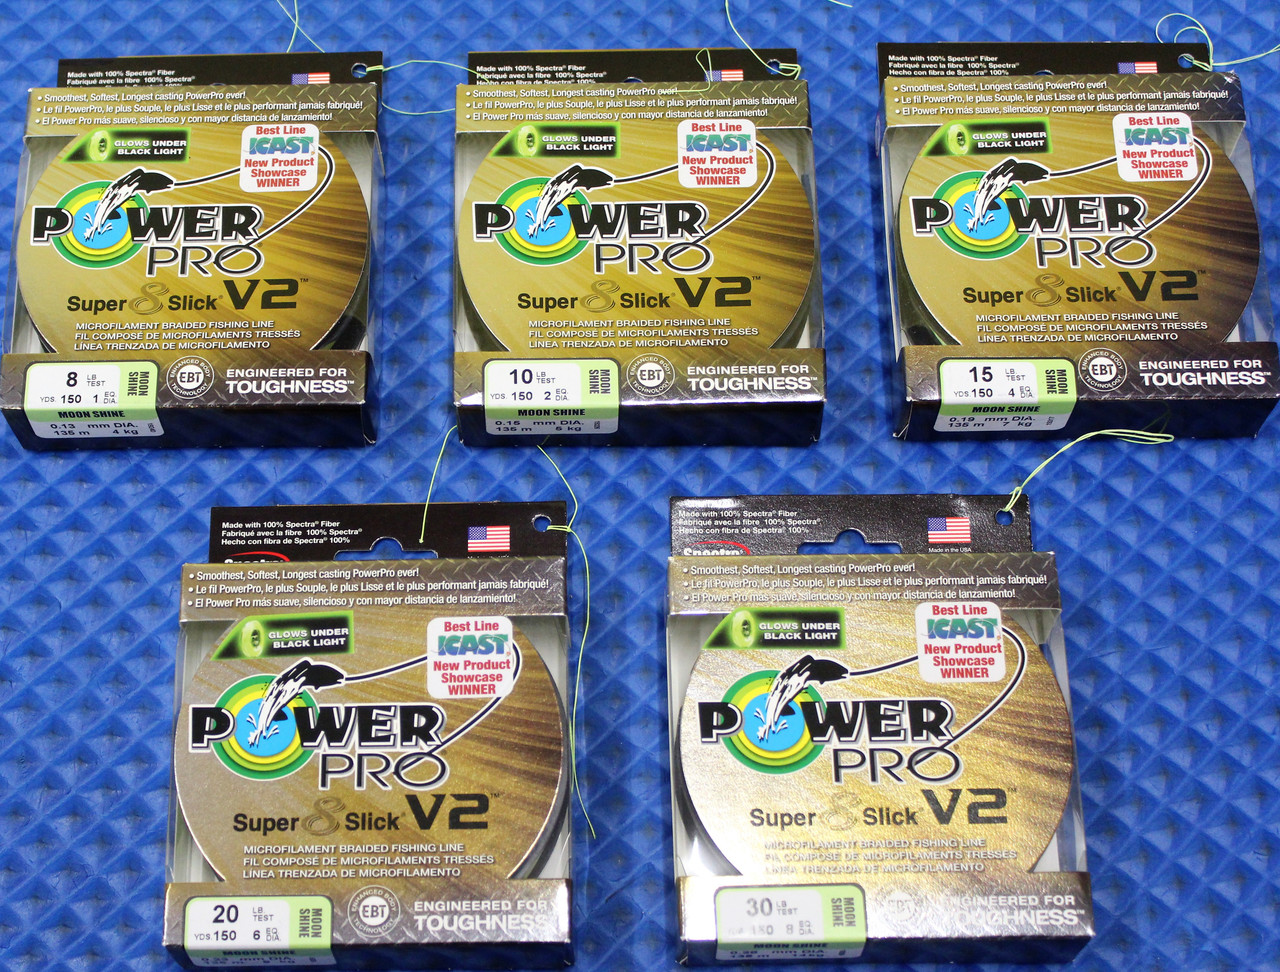 PowerPro Super 8 Slick V2 Spectra Micro Braided Fishing Line 150 Yard Moon Shine CHOOSE YOUR LINE WEIGHT